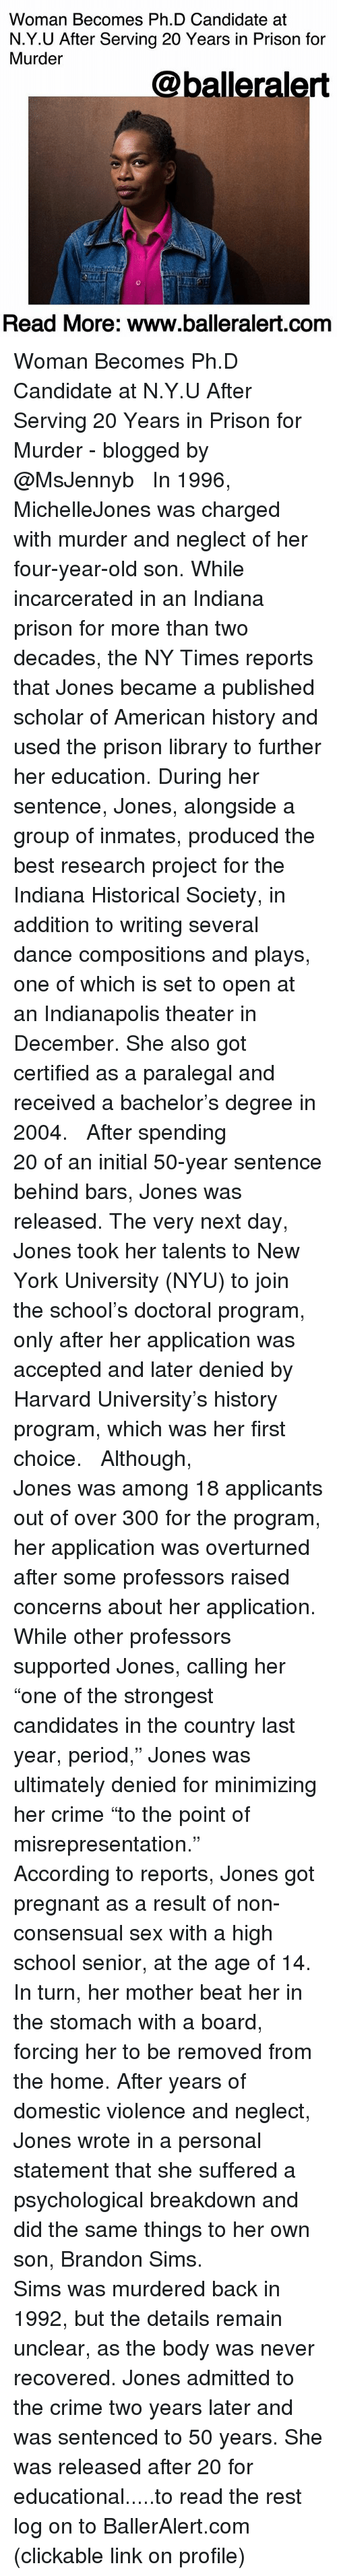 """Crime, Memes, and New York: Woman Becomes Ph.D Candidate at  N.Y.U After Serving 20 Years in Prison for  Murder  @balleralert  Read More: www.balleralert.comm Woman Becomes Ph.D Candidate at N.Y.U After Serving 20 Years in Prison for Murder - blogged by @MsJennyb ⠀⠀⠀⠀⠀⠀⠀ ⠀⠀⠀⠀⠀⠀⠀ In 1996, MichelleJones was charged with murder and neglect of her four-year-old son. While incarcerated in an Indiana prison for more than two decades, the NY Times reports that Jones became a published scholar of American history and used the prison library to further her education. During her sentence, Jones, alongside a group of inmates, produced the best research project for the Indiana Historical Society, in addition to writing several dance compositions and plays, one of which is set to open at an Indianapolis theater in December. She also got certified as a paralegal and received a bachelor's degree in 2004. ⠀⠀⠀⠀⠀⠀⠀ ⠀⠀⠀⠀⠀⠀⠀ After spending 20 of an initial 50-year sentence behind bars, Jones was released. The very next day, Jones took her talents to New York University (NYU) to join the school's doctoral program, only after her application was accepted and later denied by Harvard University's history program, which was her first choice. ⠀⠀⠀⠀⠀⠀⠀ ⠀⠀⠀⠀⠀⠀⠀ Although, Jones was among 18 applicants out of over 300 for the program, her application was overturned after some professors raised concerns about her application. While other professors supported Jones, calling her """"one of the strongest candidates in the country last year, period,"""" Jones was ultimately denied for minimizing her crime """"to the point of misrepresentation."""" ⠀⠀⠀⠀⠀⠀⠀ ⠀⠀⠀⠀⠀⠀⠀ According to reports, Jones got pregnant as a result of non-consensual sex with a high school senior, at the age of 14. In turn, her mother beat her in the stomach with a board, forcing her to be removed from the home. After years of domestic violence and neglect, Jones wrote in a personal statement that she suffered a psychological breakdown and did the"""